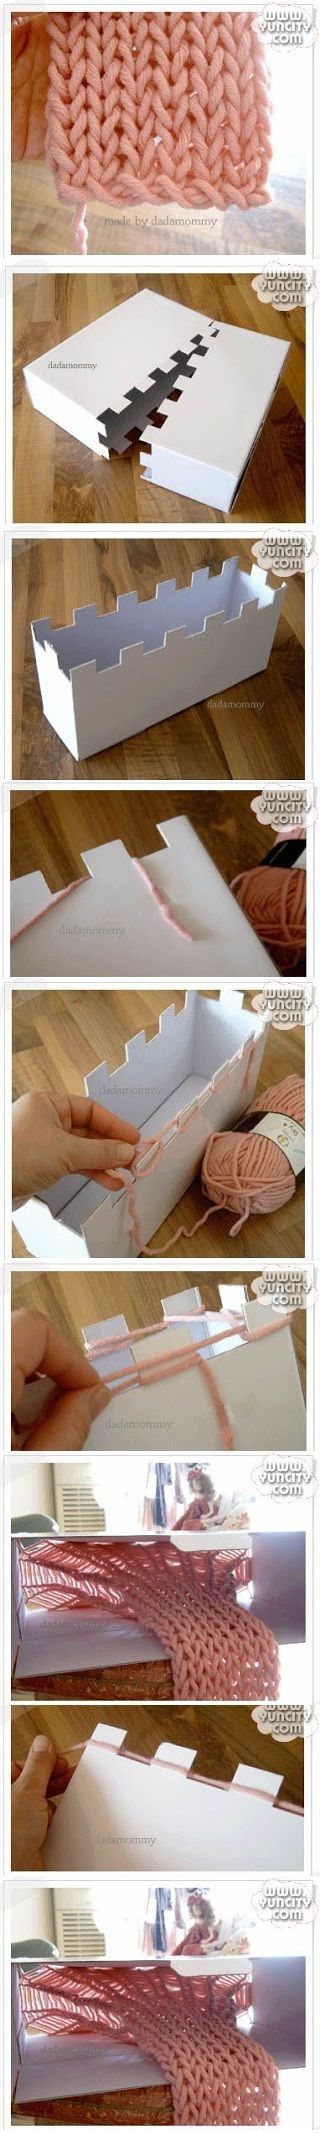 This is so brilliant! Looks like the box becomes a knitting frame.